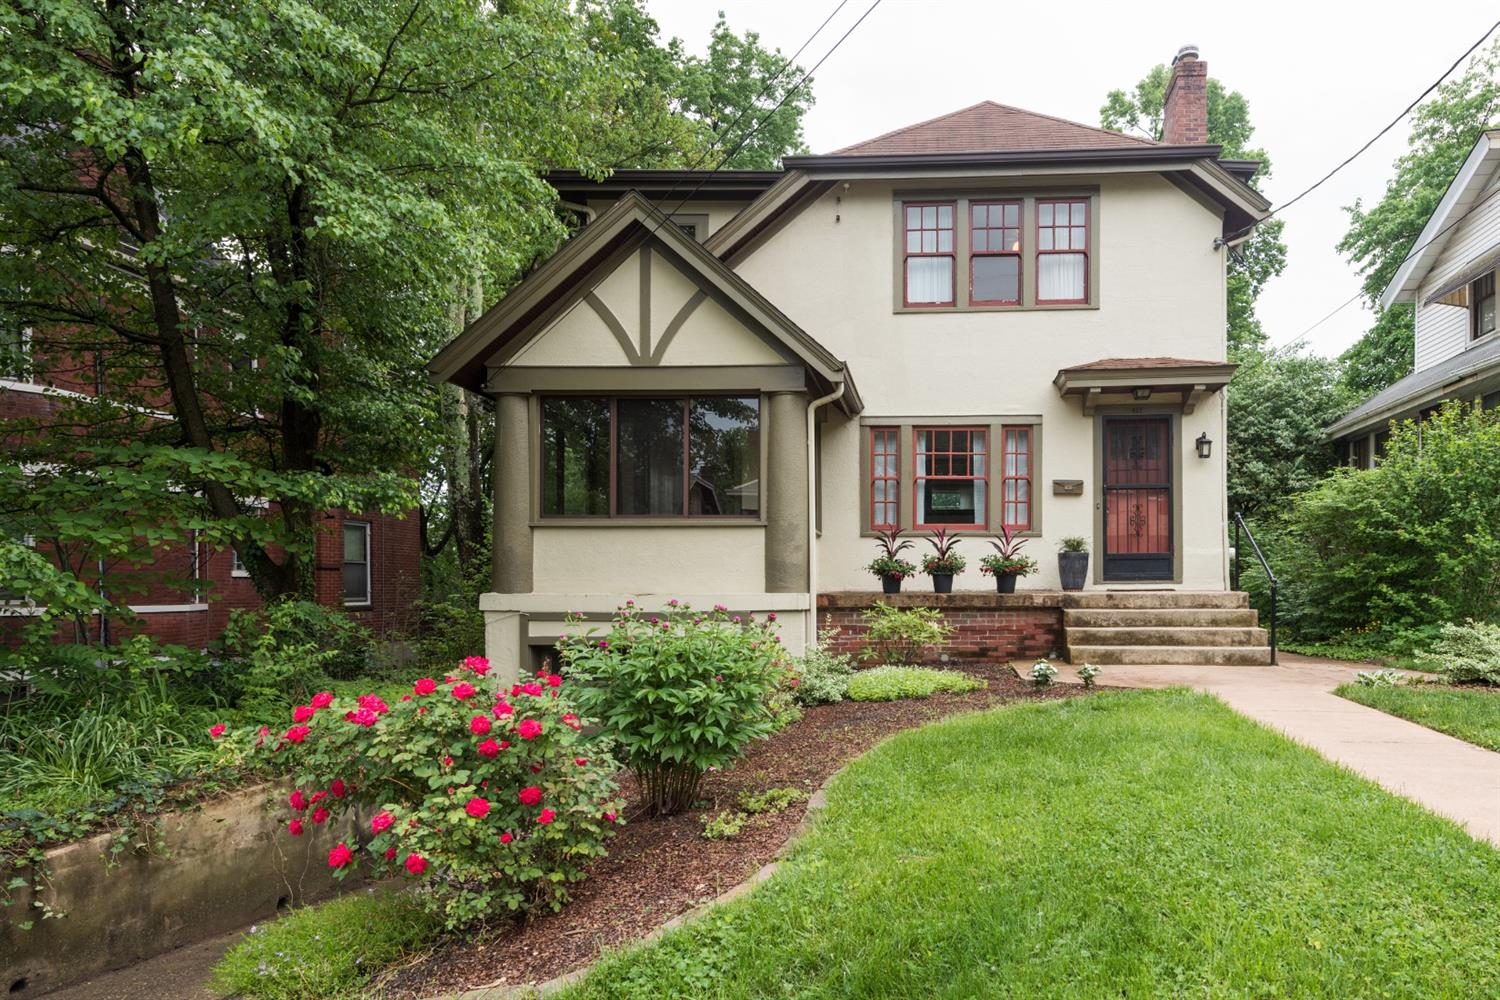 417 Wood Ave Clifton, OH